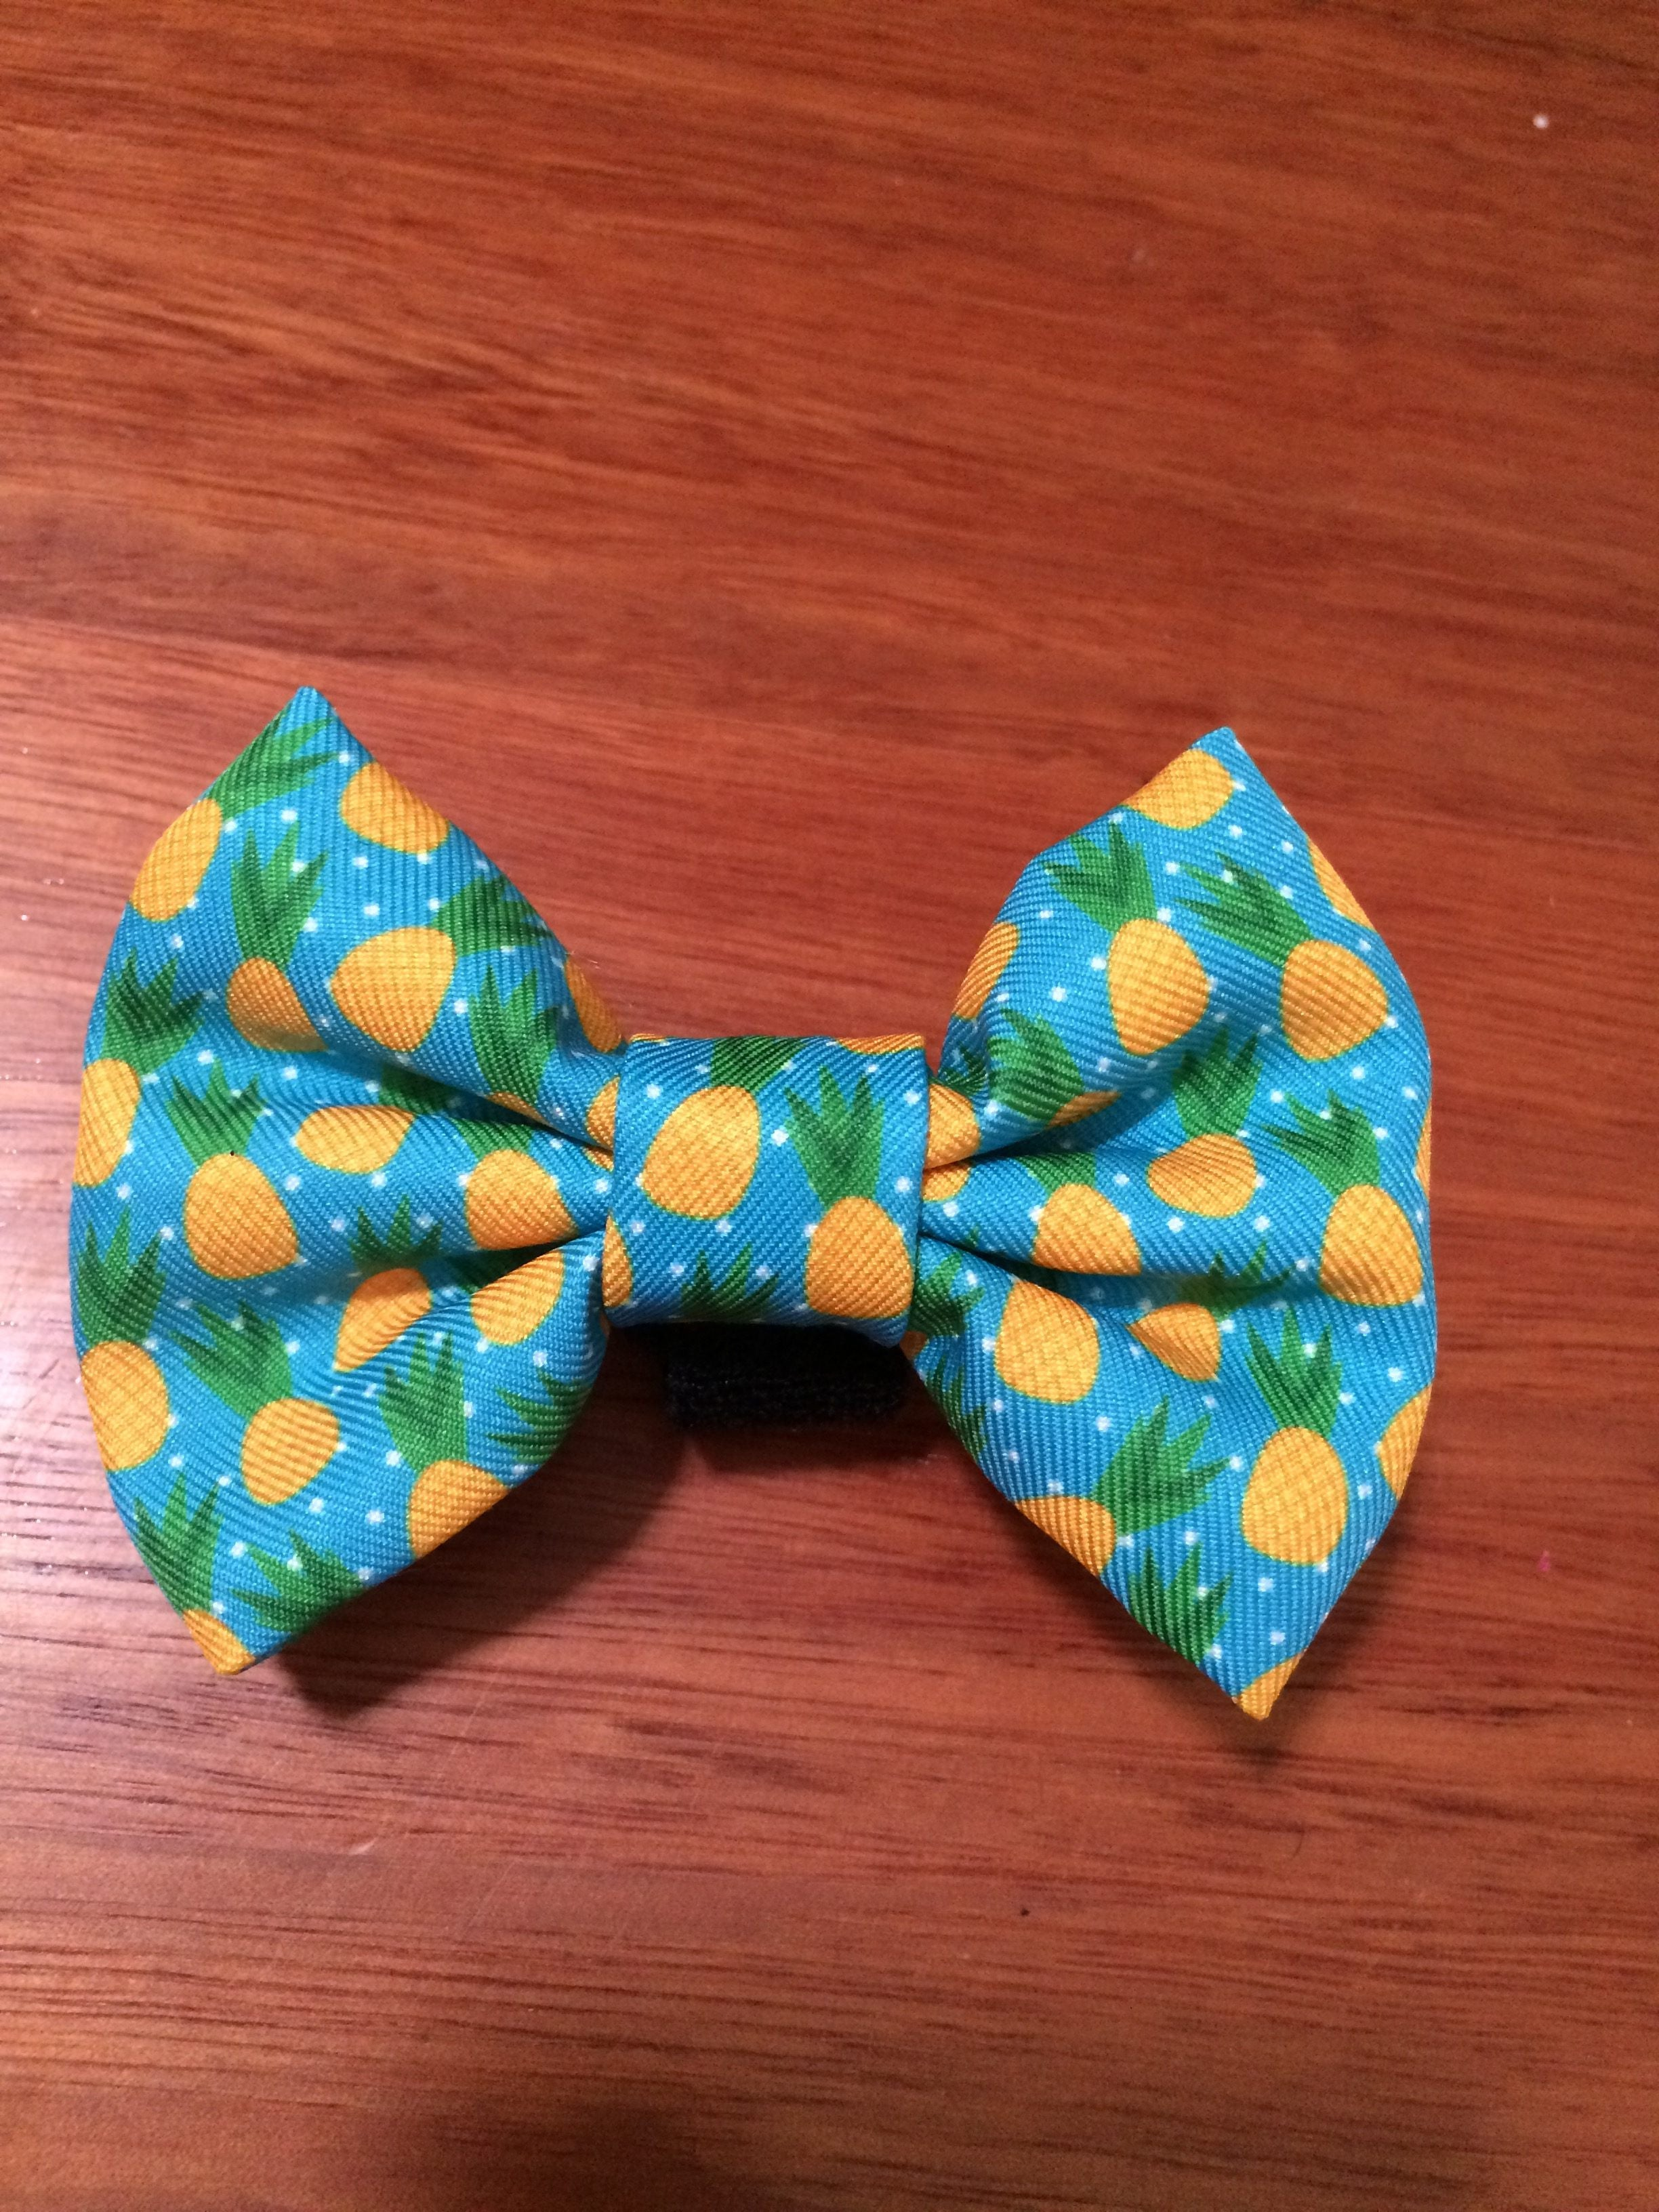 Pineapple Bow Tie - Small & Large-Dizzy Dog Collars-Large-Dizzy Dog Collars